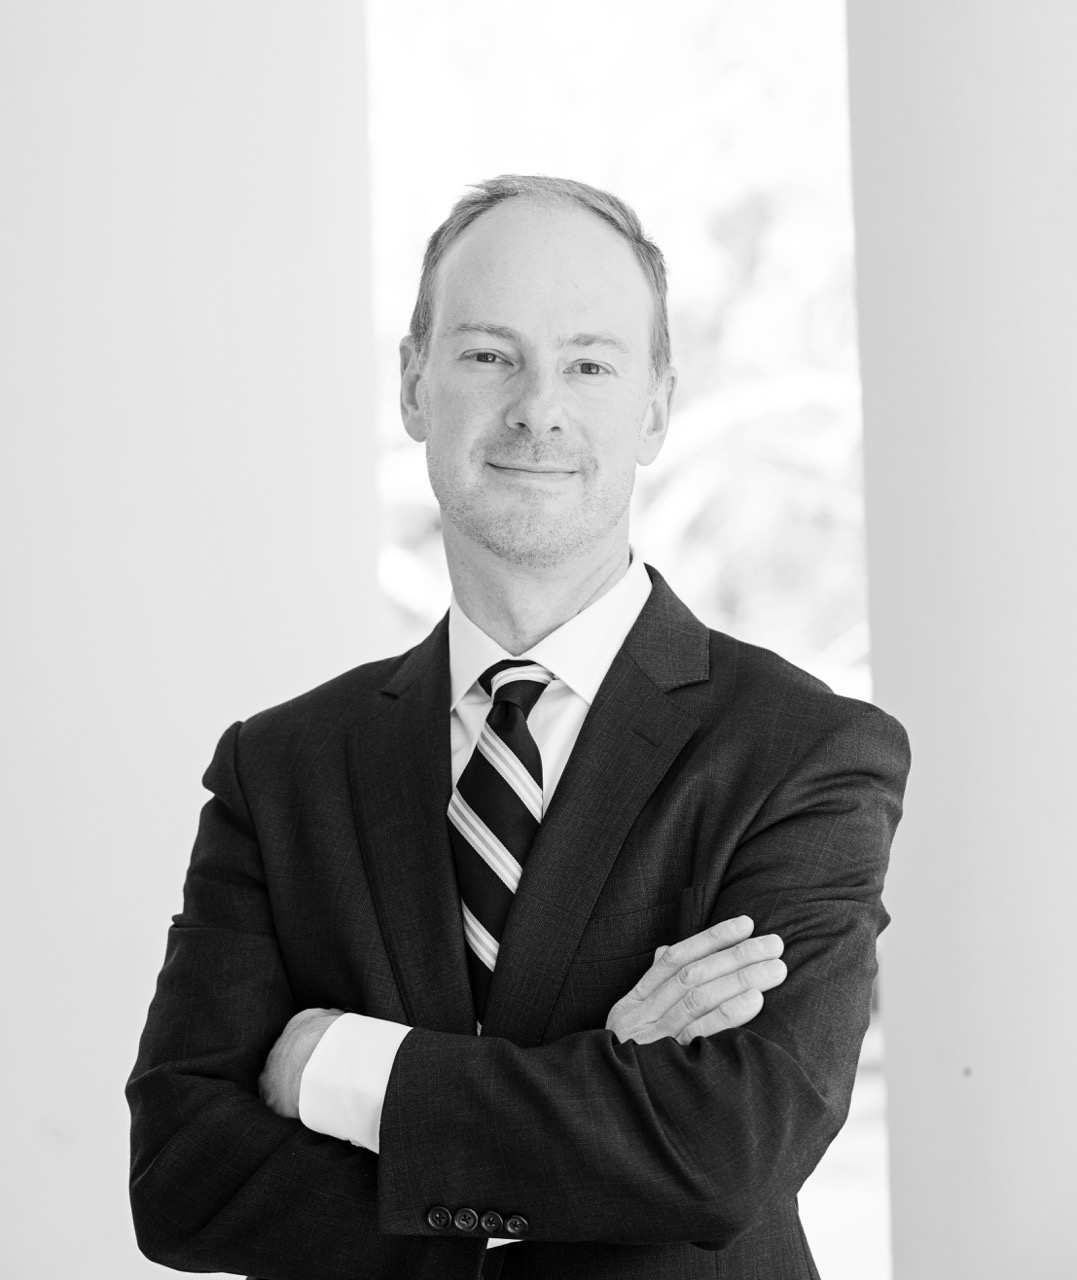 Todd Sechser's research interests include the strategic impact of nuclear weapons and the role of reputation and military coercion in international relations. (Contributed photo)